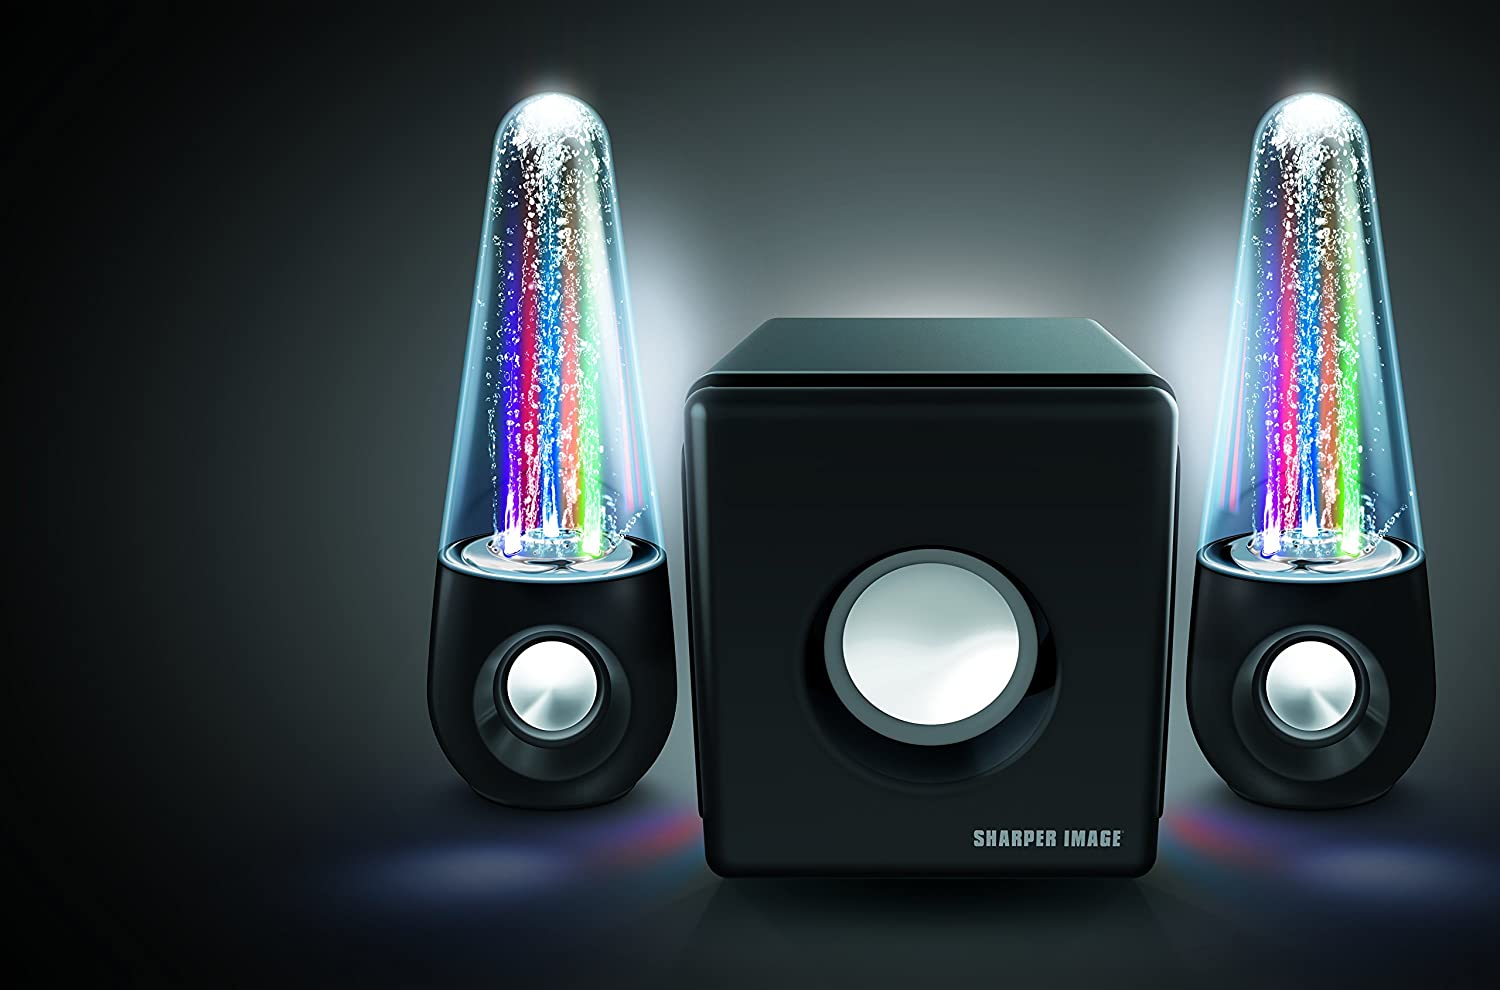 The Sharper Image SBT5002 dancing water speakers offer very good performance.